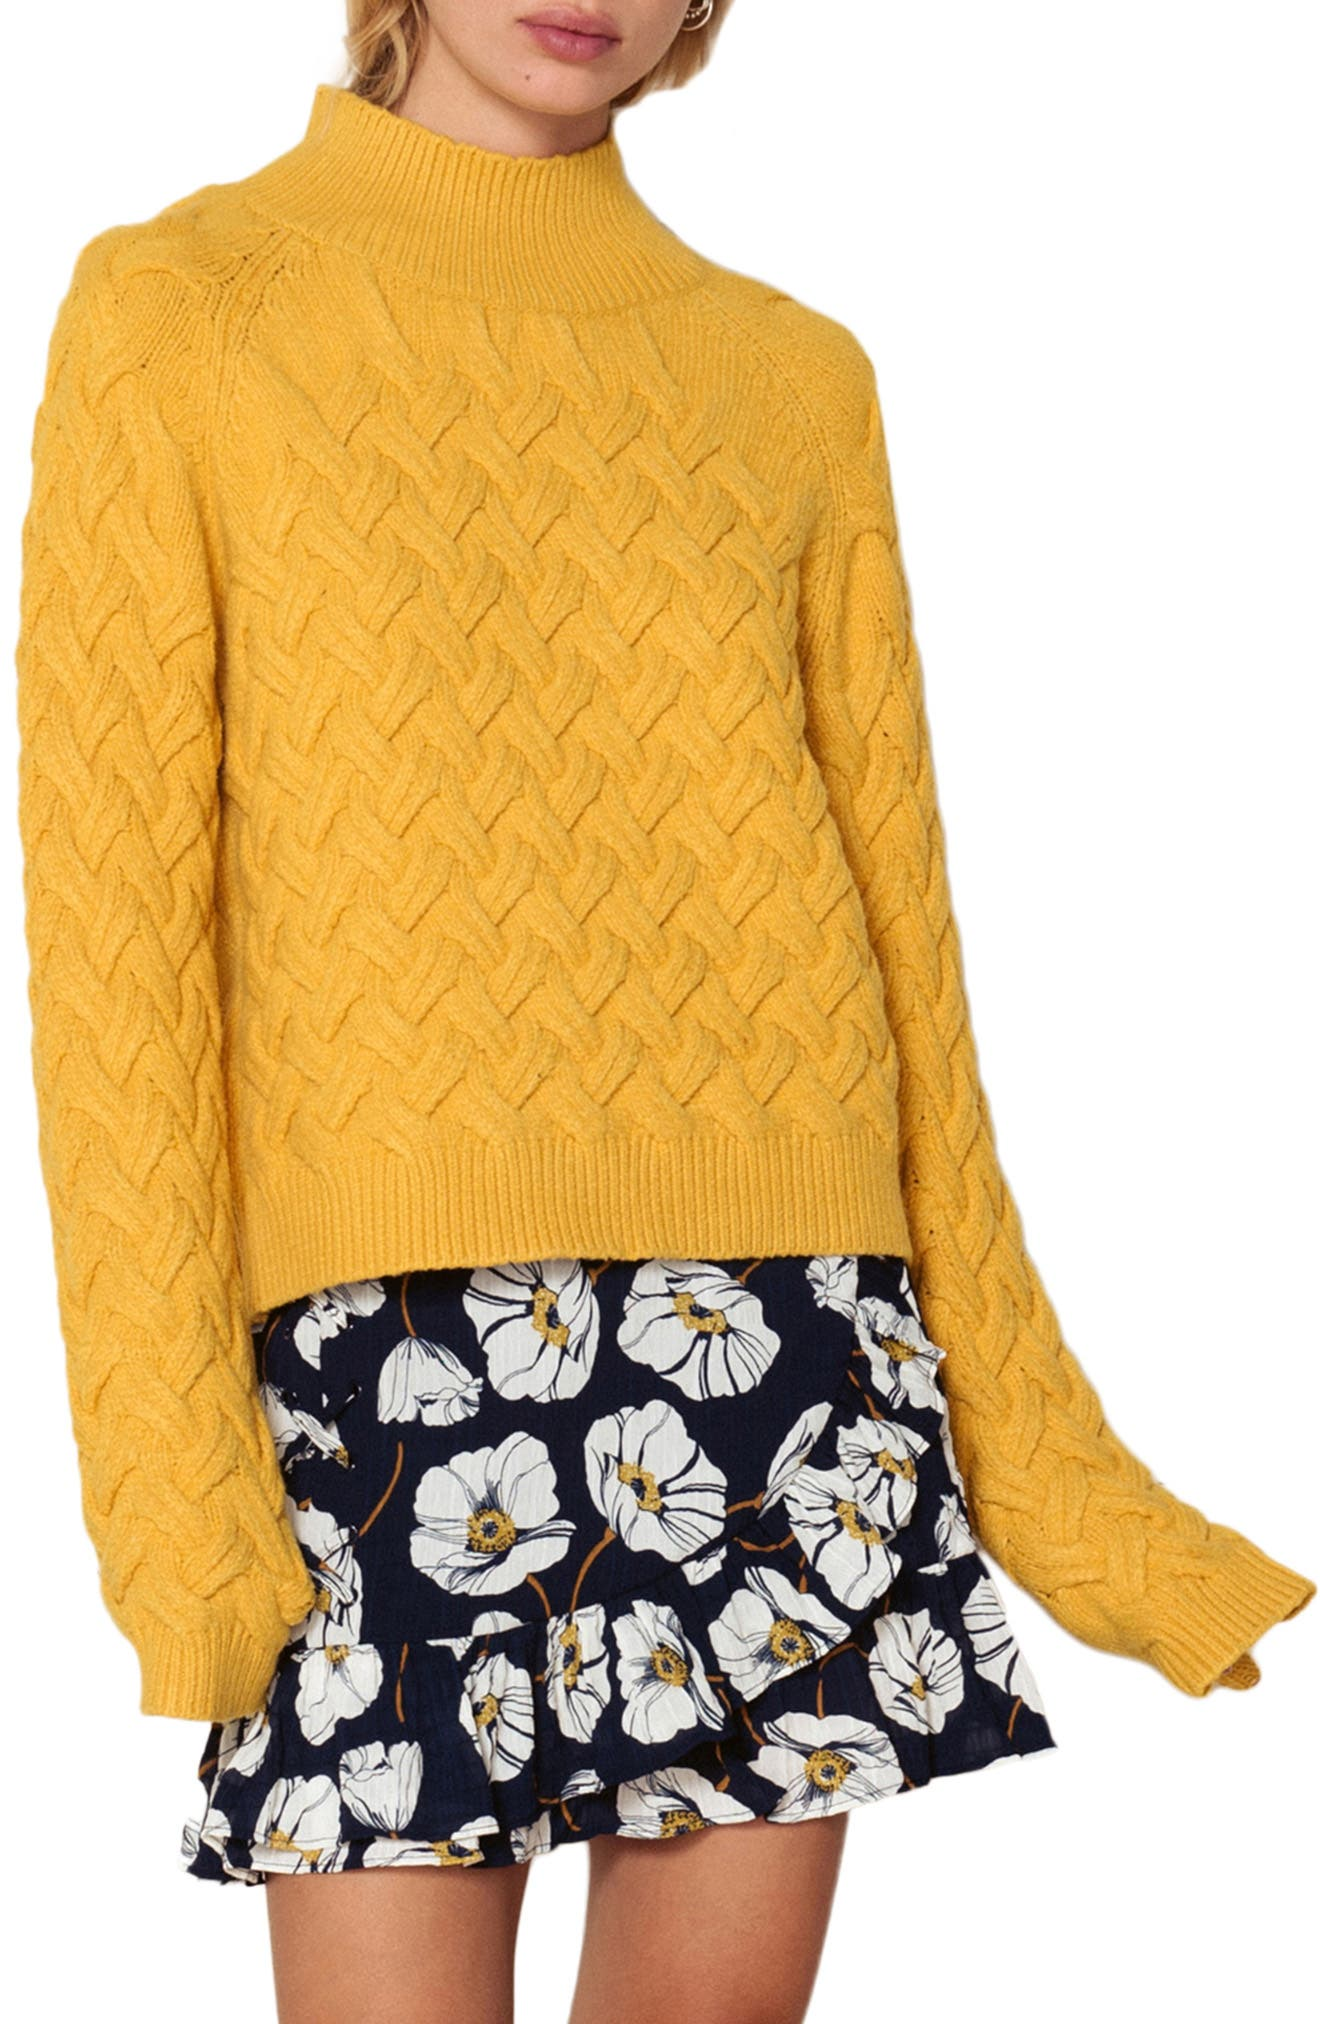 Adele Sweater,                             Main thumbnail 1, color,                             BUTTERSCOTCH